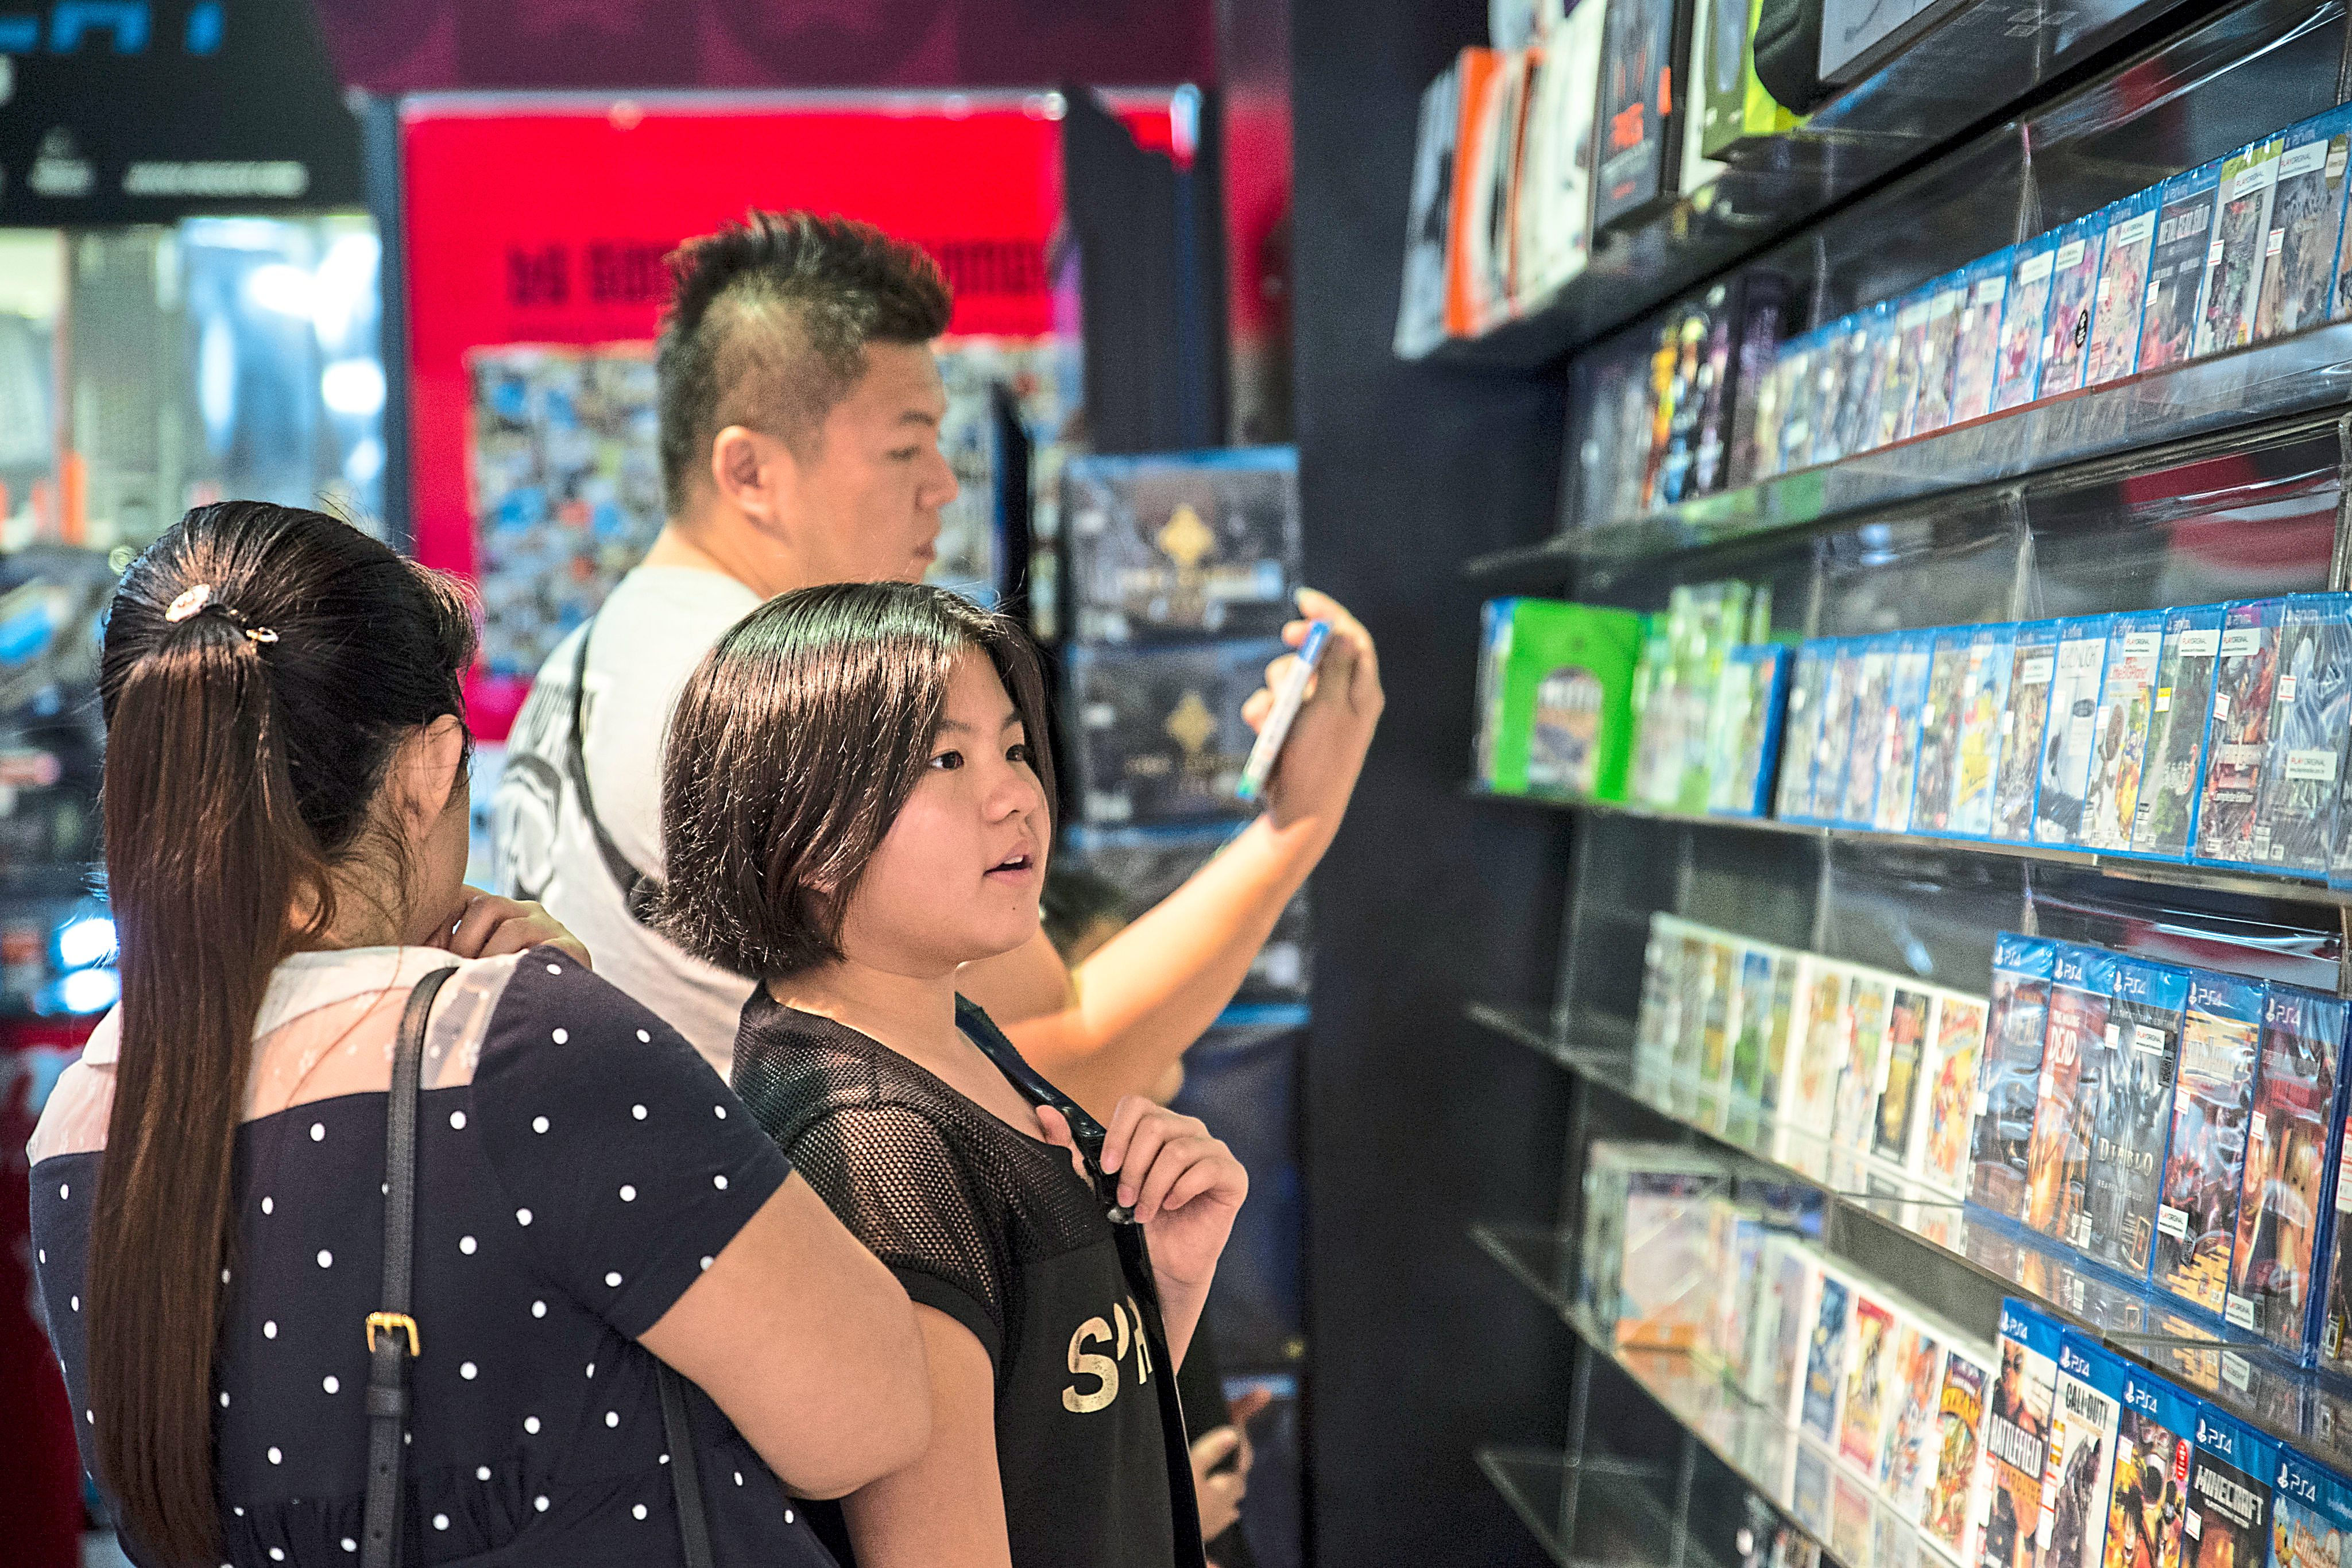 Browsing: with high broadband still not widely available, sales in brick-and-mortar game shops are still good